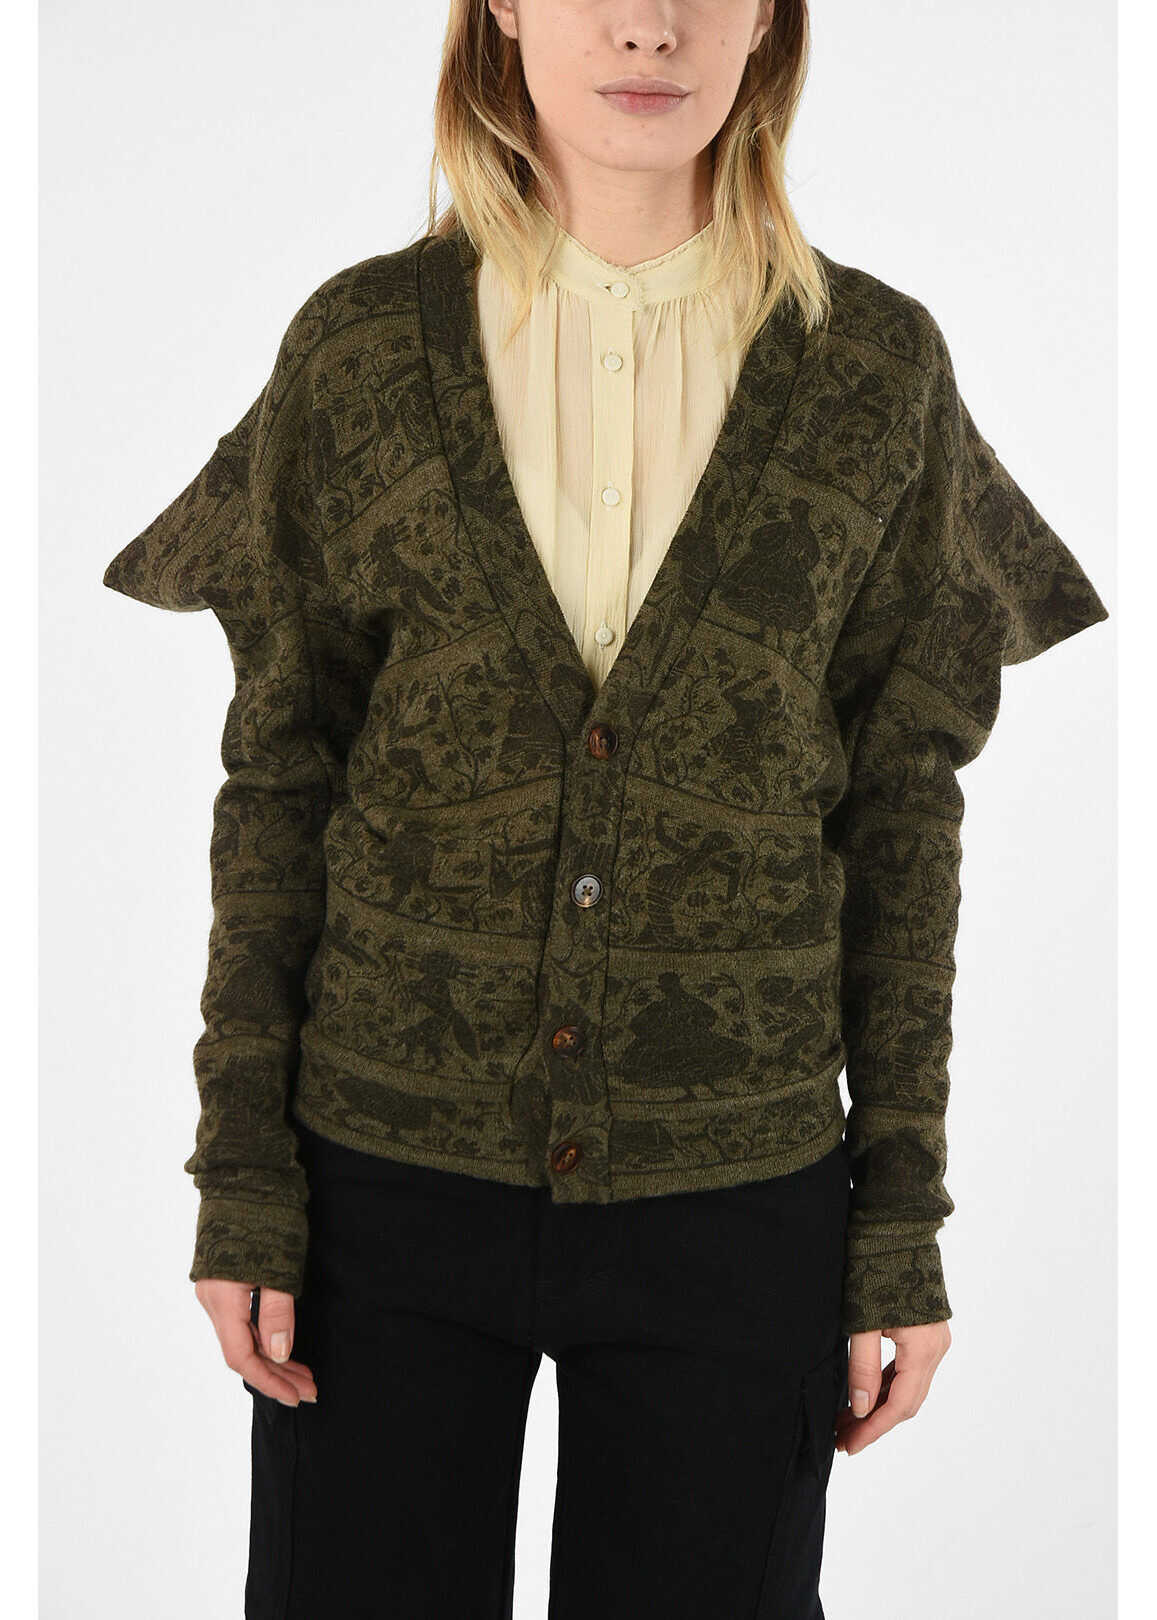 Vivienne Westwood WORLDS END printed WITCHES cardigan GREEN imagine